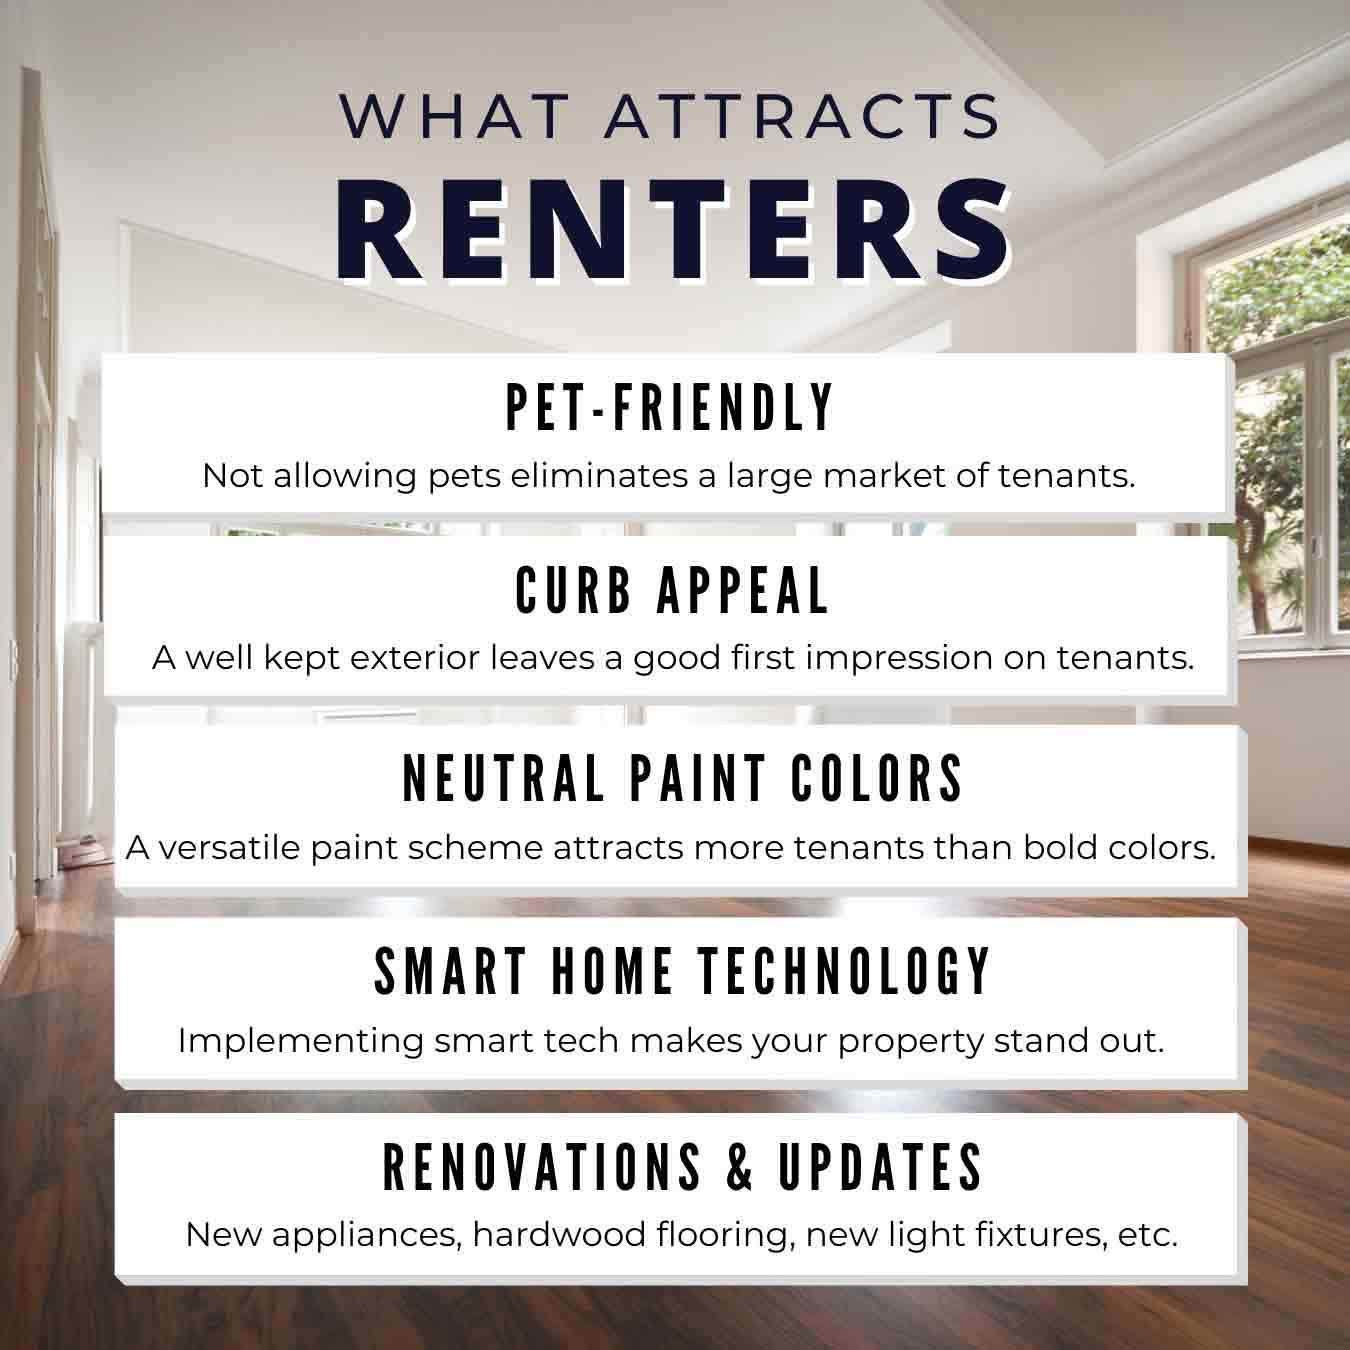 Attracts-Renters